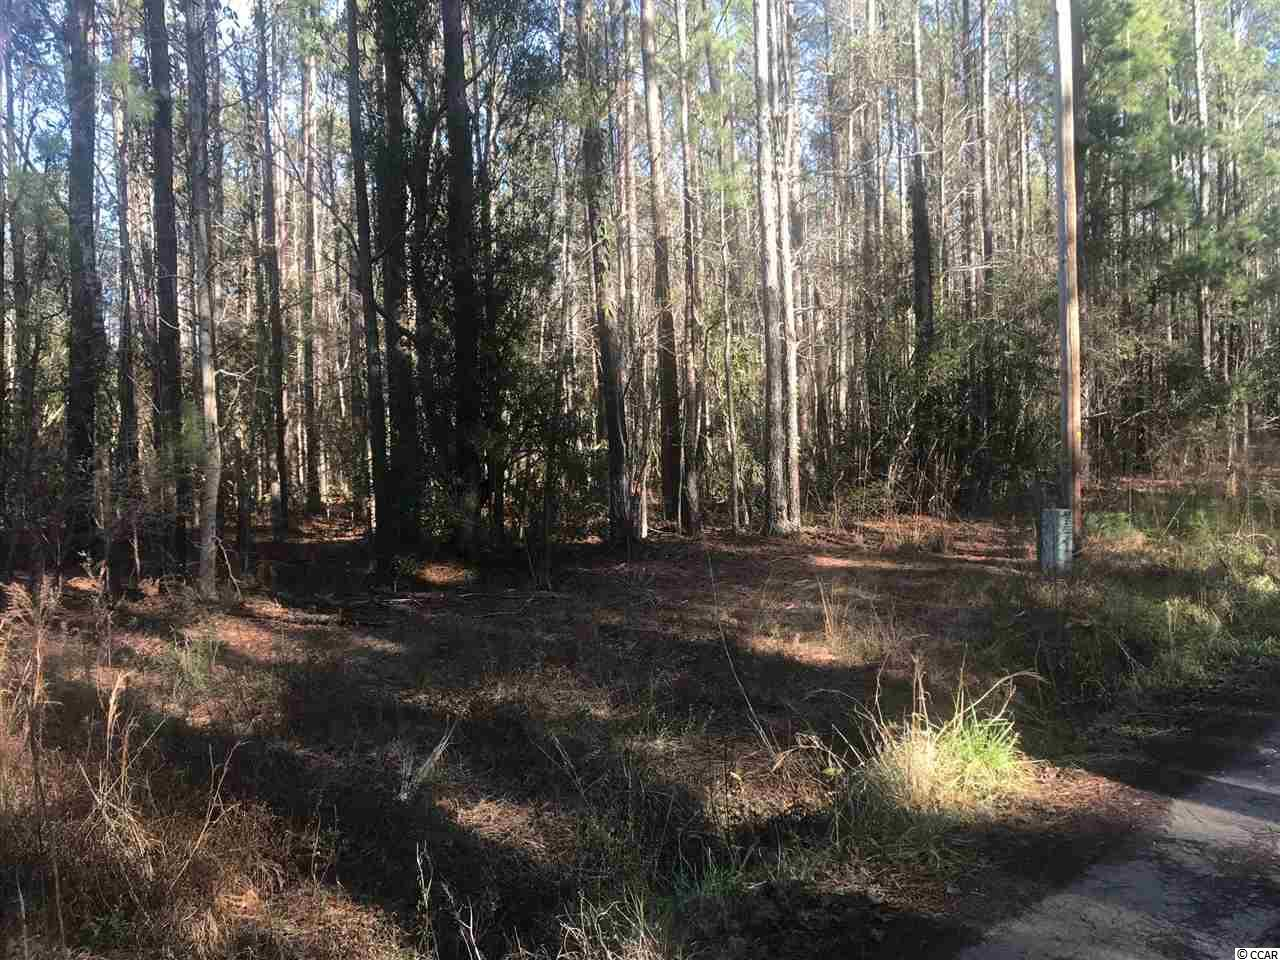 Room to Roam after purchasing this 13 acre of wooded land. This affordable acreage is located just off of Highway 57 in Little River! Plenty of room to build your dream estate with No HOA fees! Multiple uses for this property , which is on both sides of Finnell Rd. Cut the timber and make some cash and start building! Only 10 minutes to the beach! Hurry because this deal won't last long!